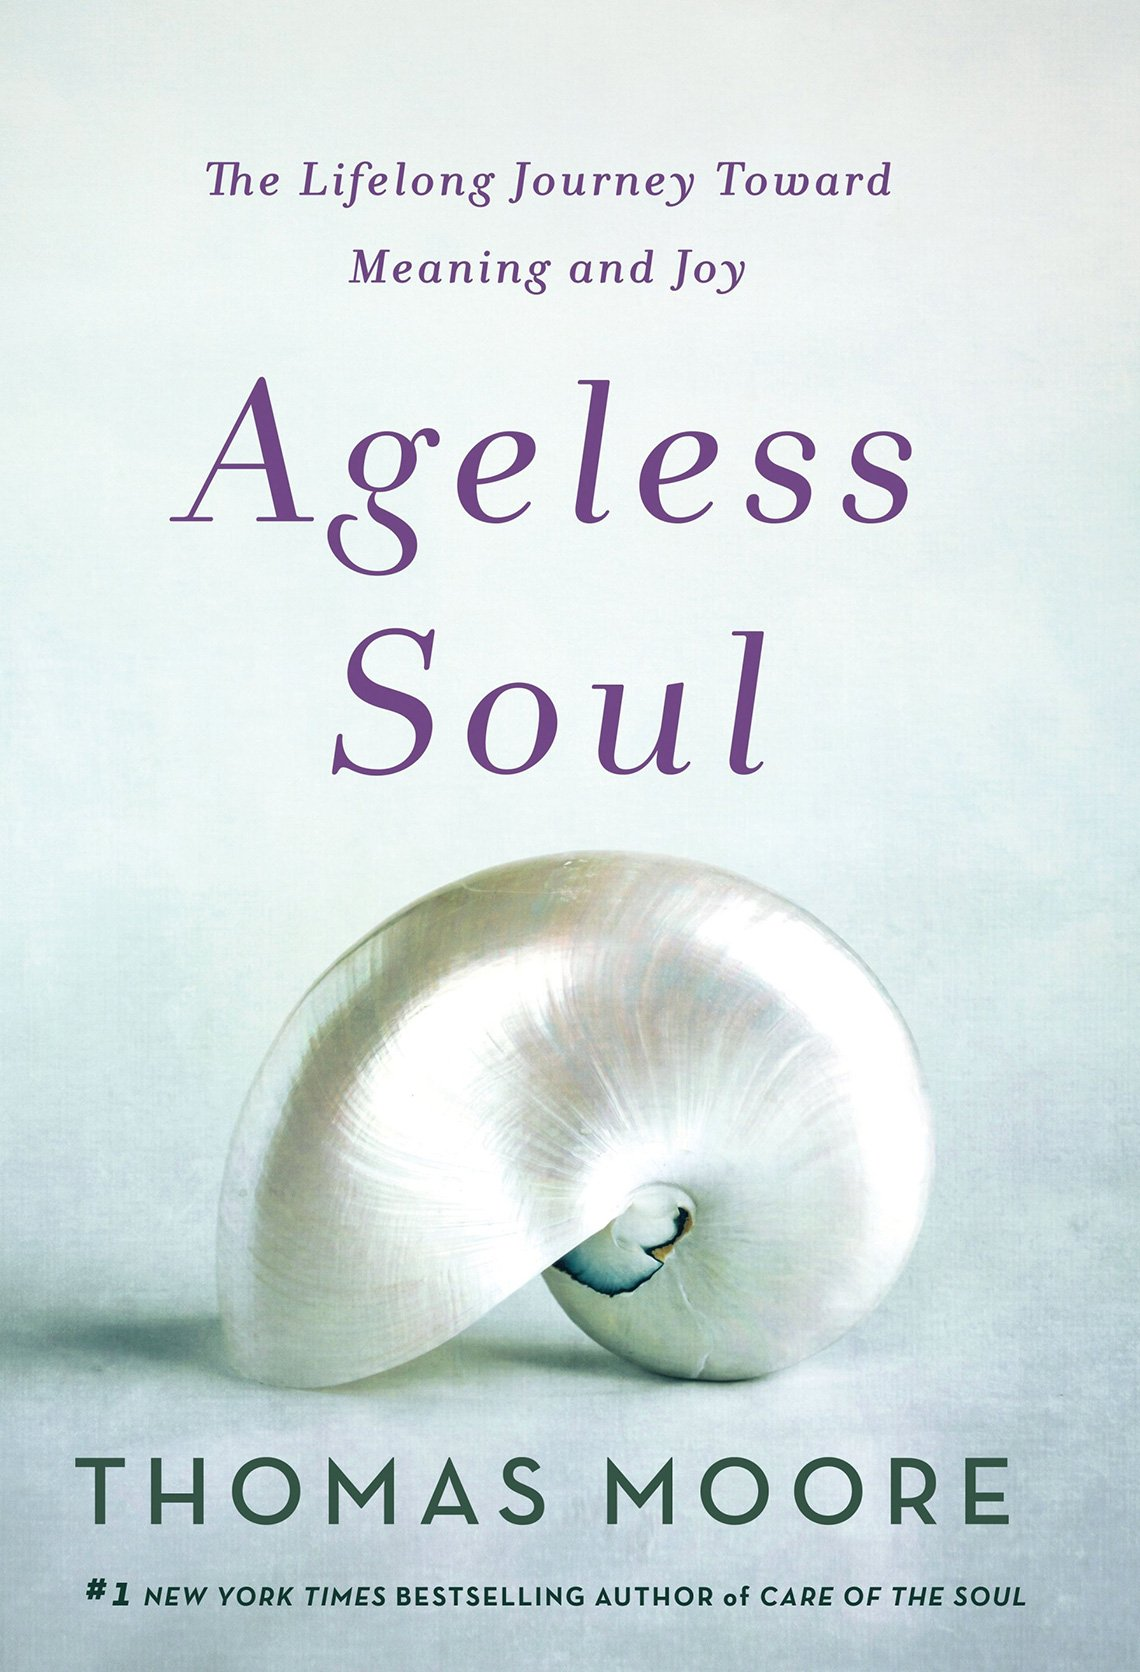 'Ageless Soul: The Lifelong Journey Toward Meaning and Joy' by Thomas Moore